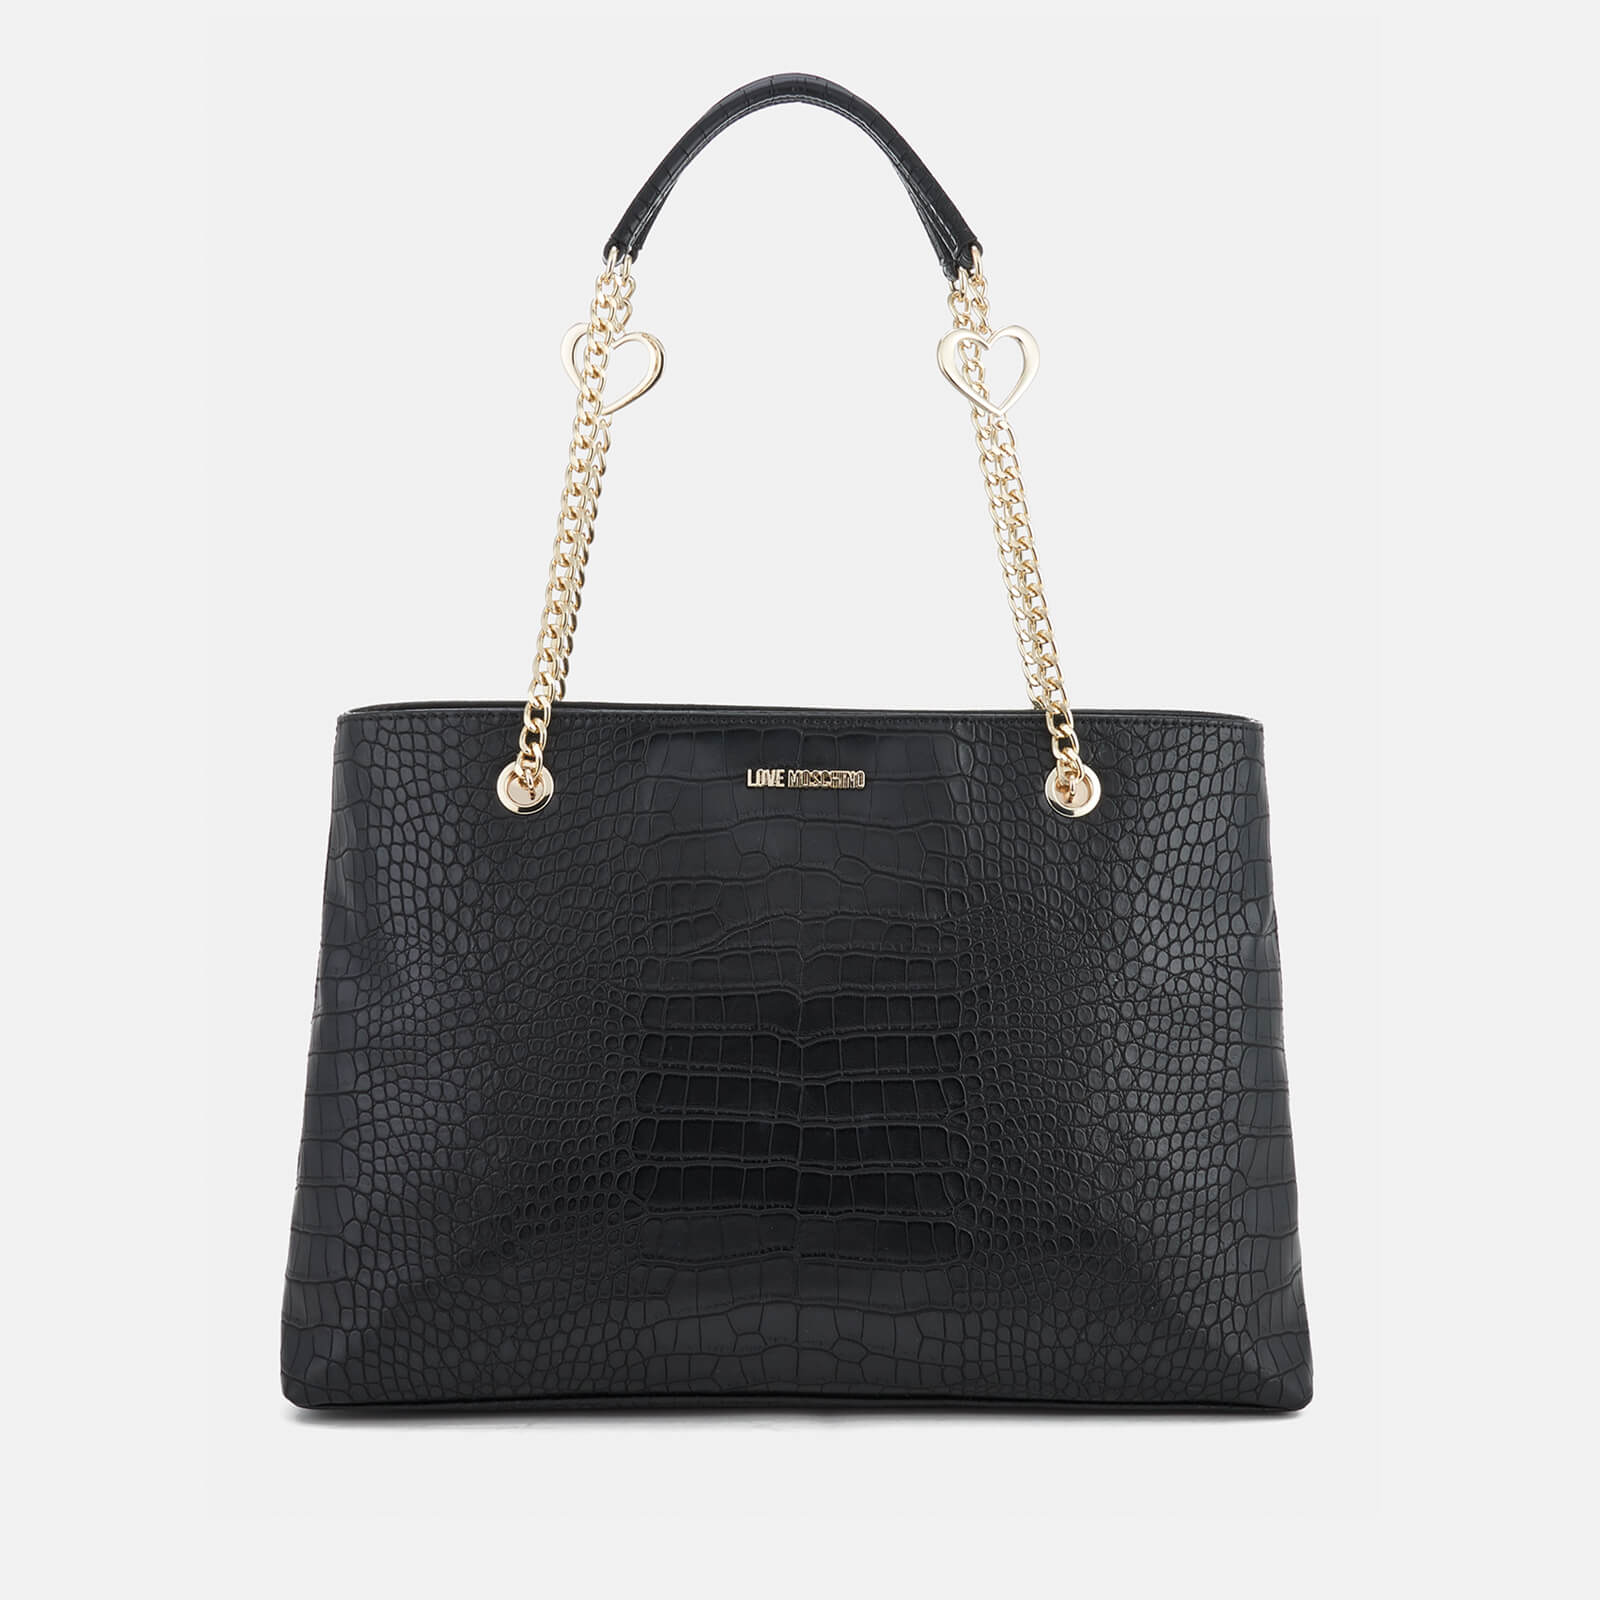 c1b5d1f2cf Love Moschino Women's Croc Shopper Tote Bag - Black - Free UK Delivery over  £50